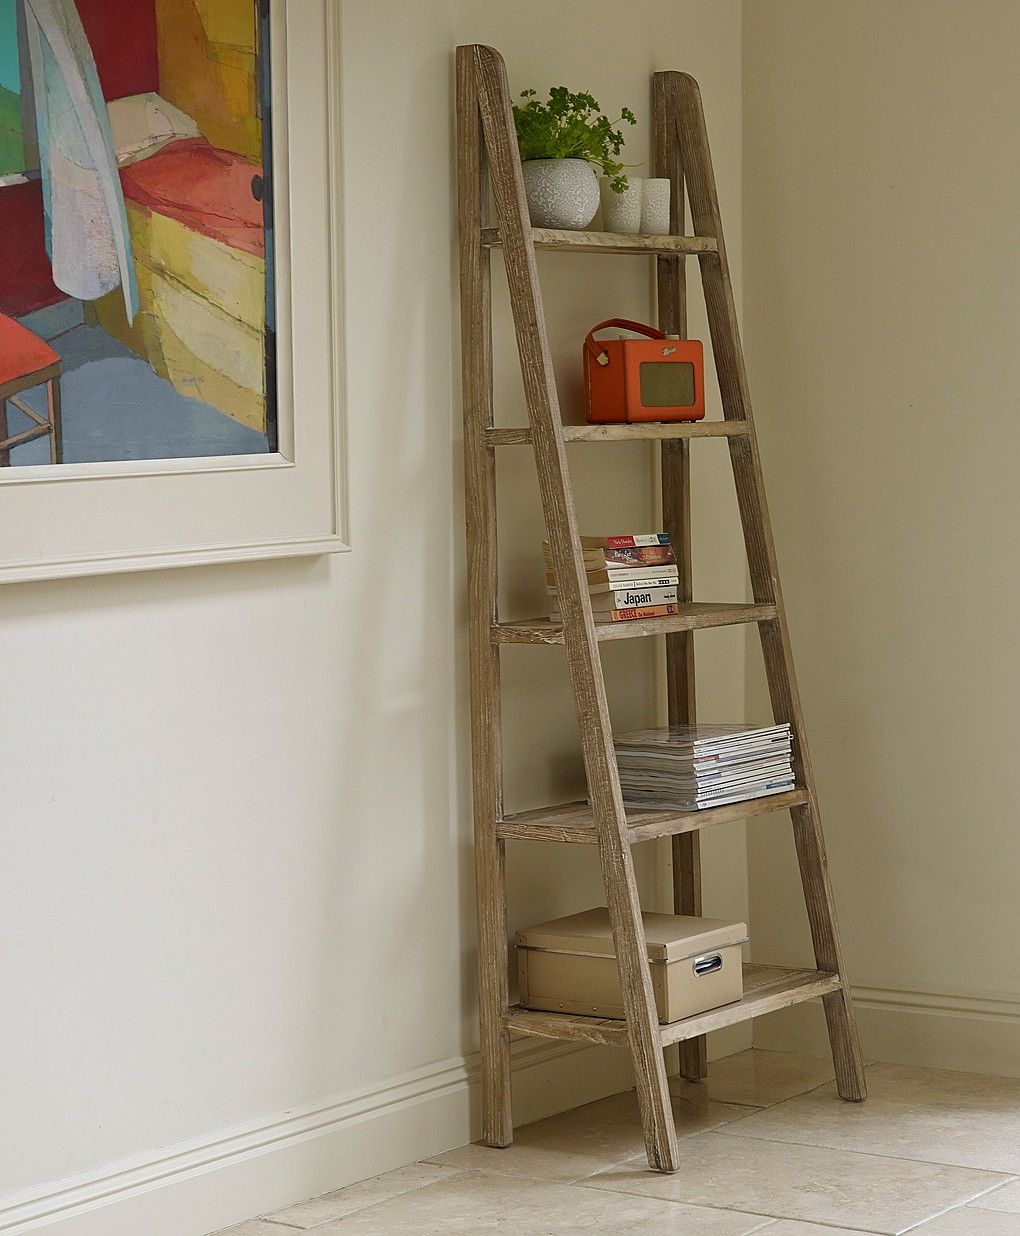 Painting of outstanding storage ideas with a ladder shelving unit